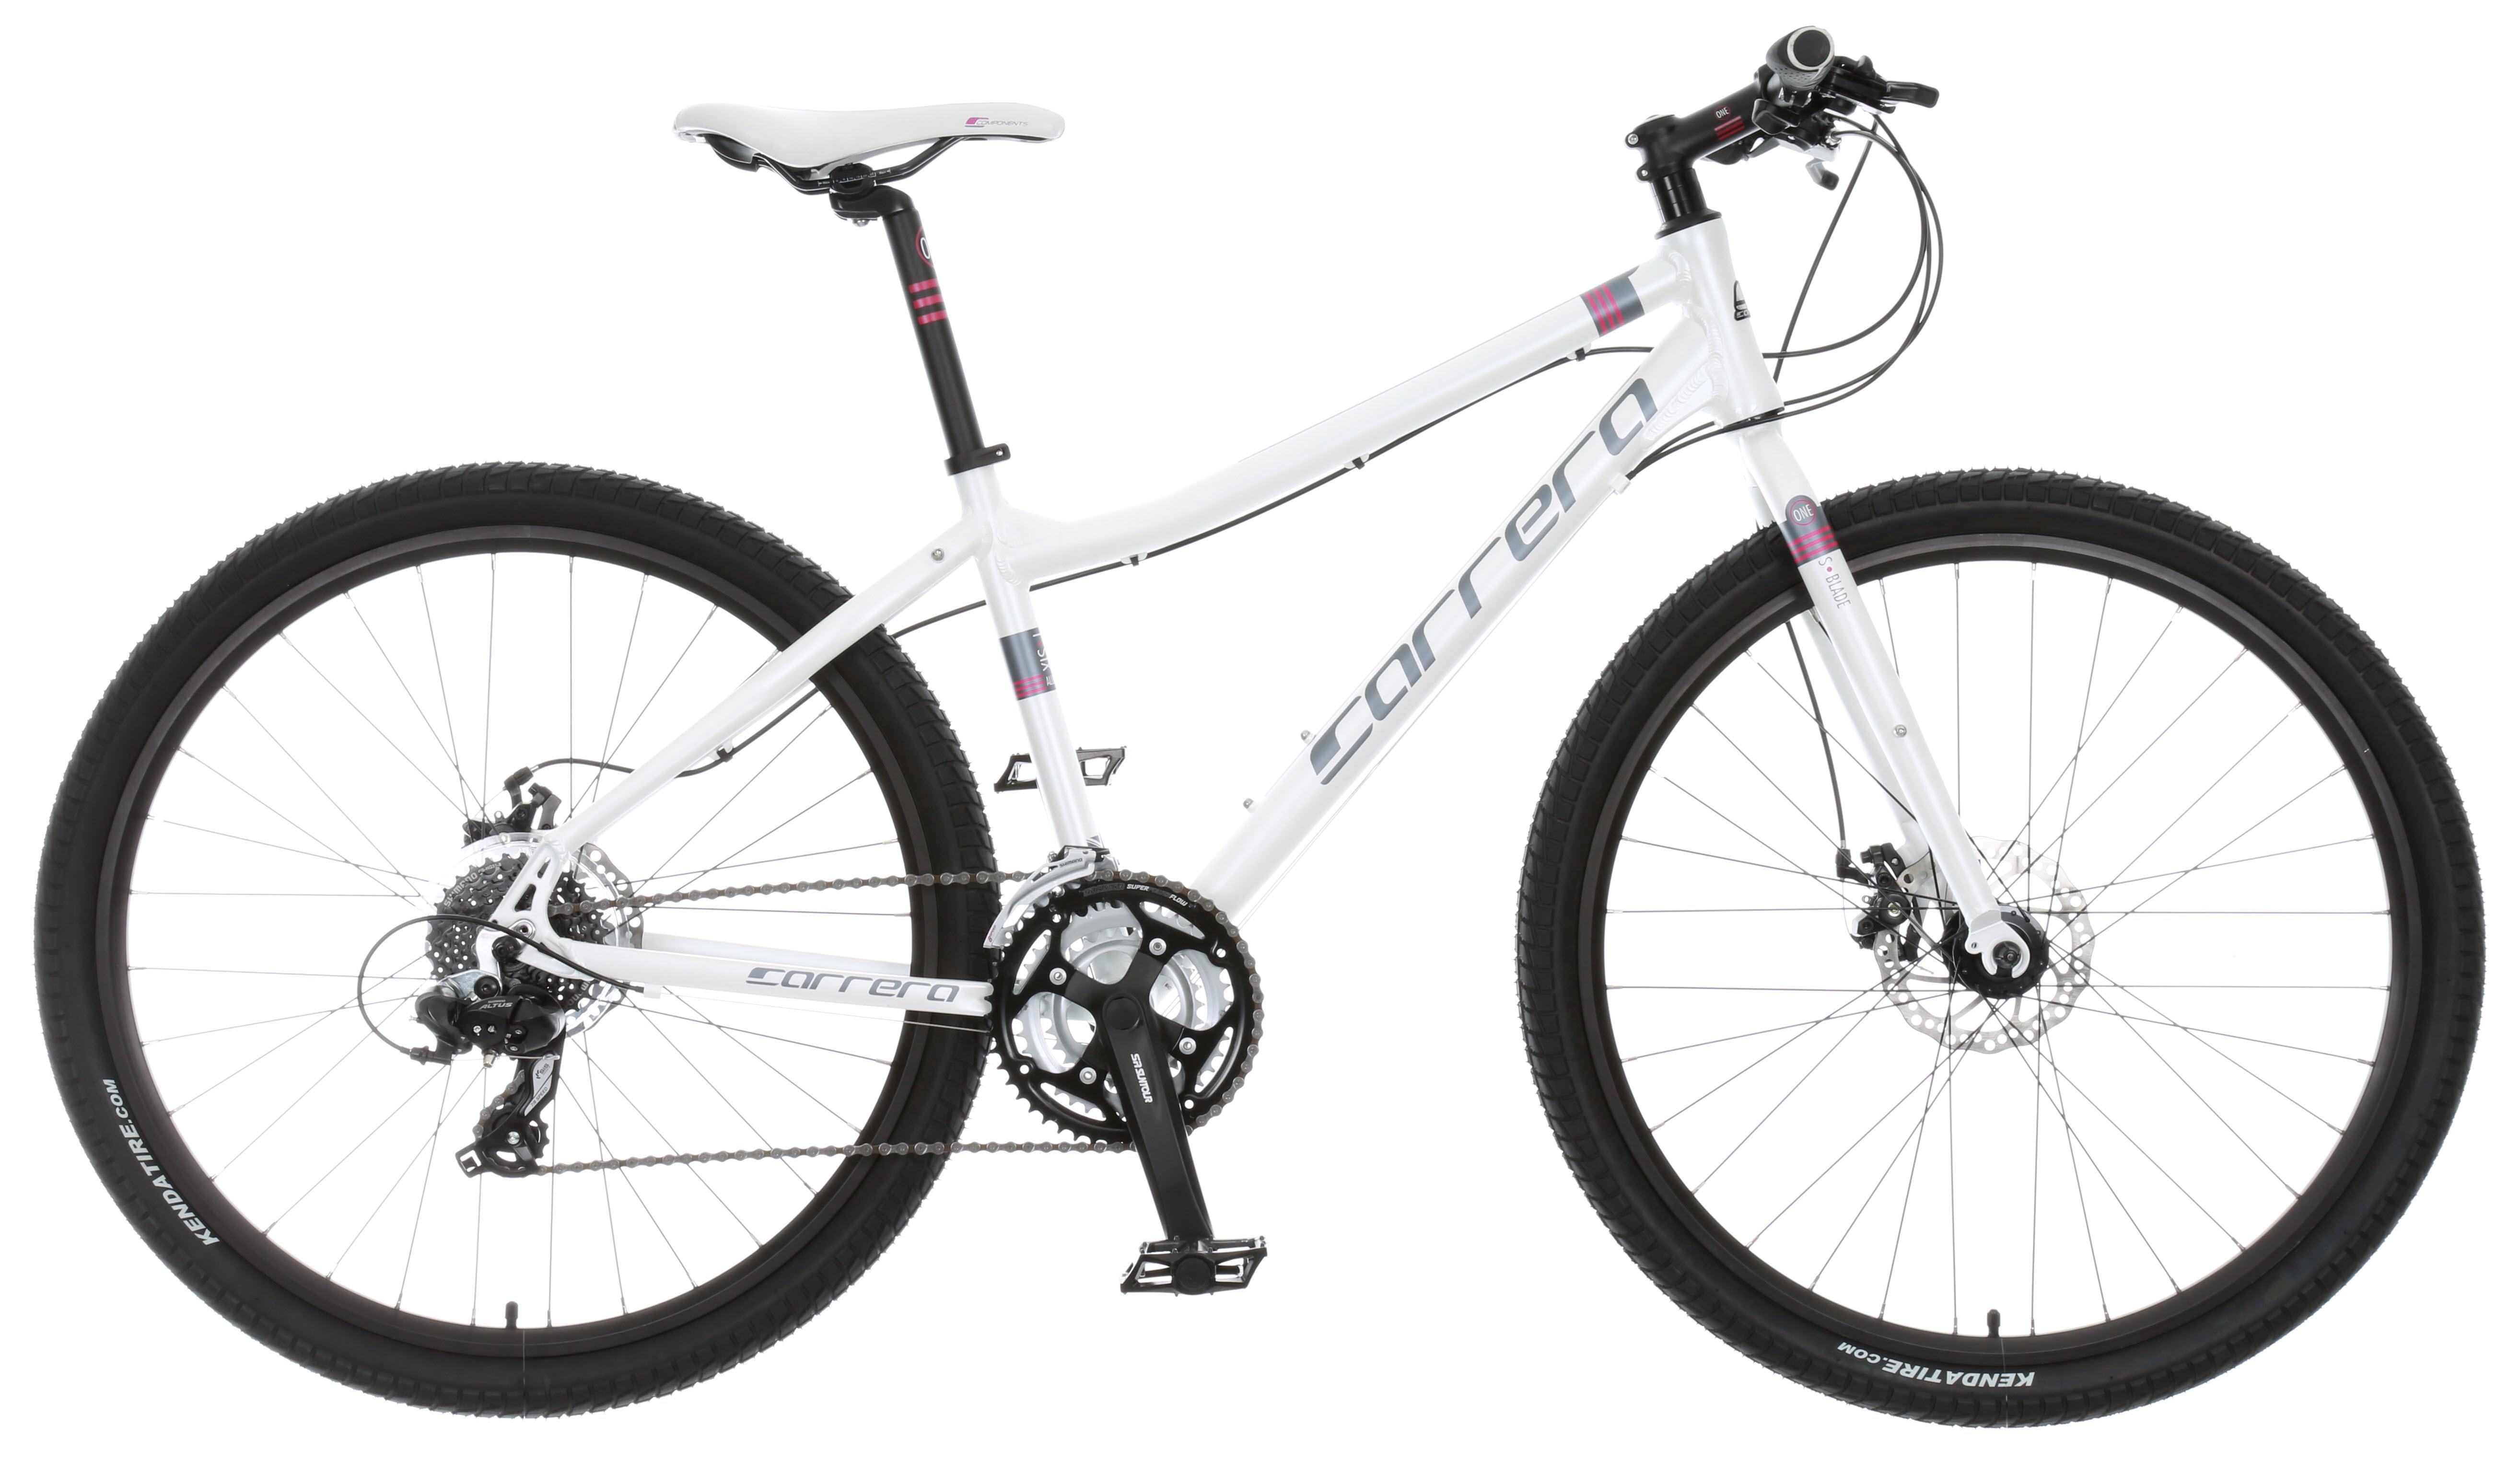 Details about Carrera Subway 1 Womens Hybrid Bike 2015 Alloy Frame 24 Gears  Disc Brakes 27 5